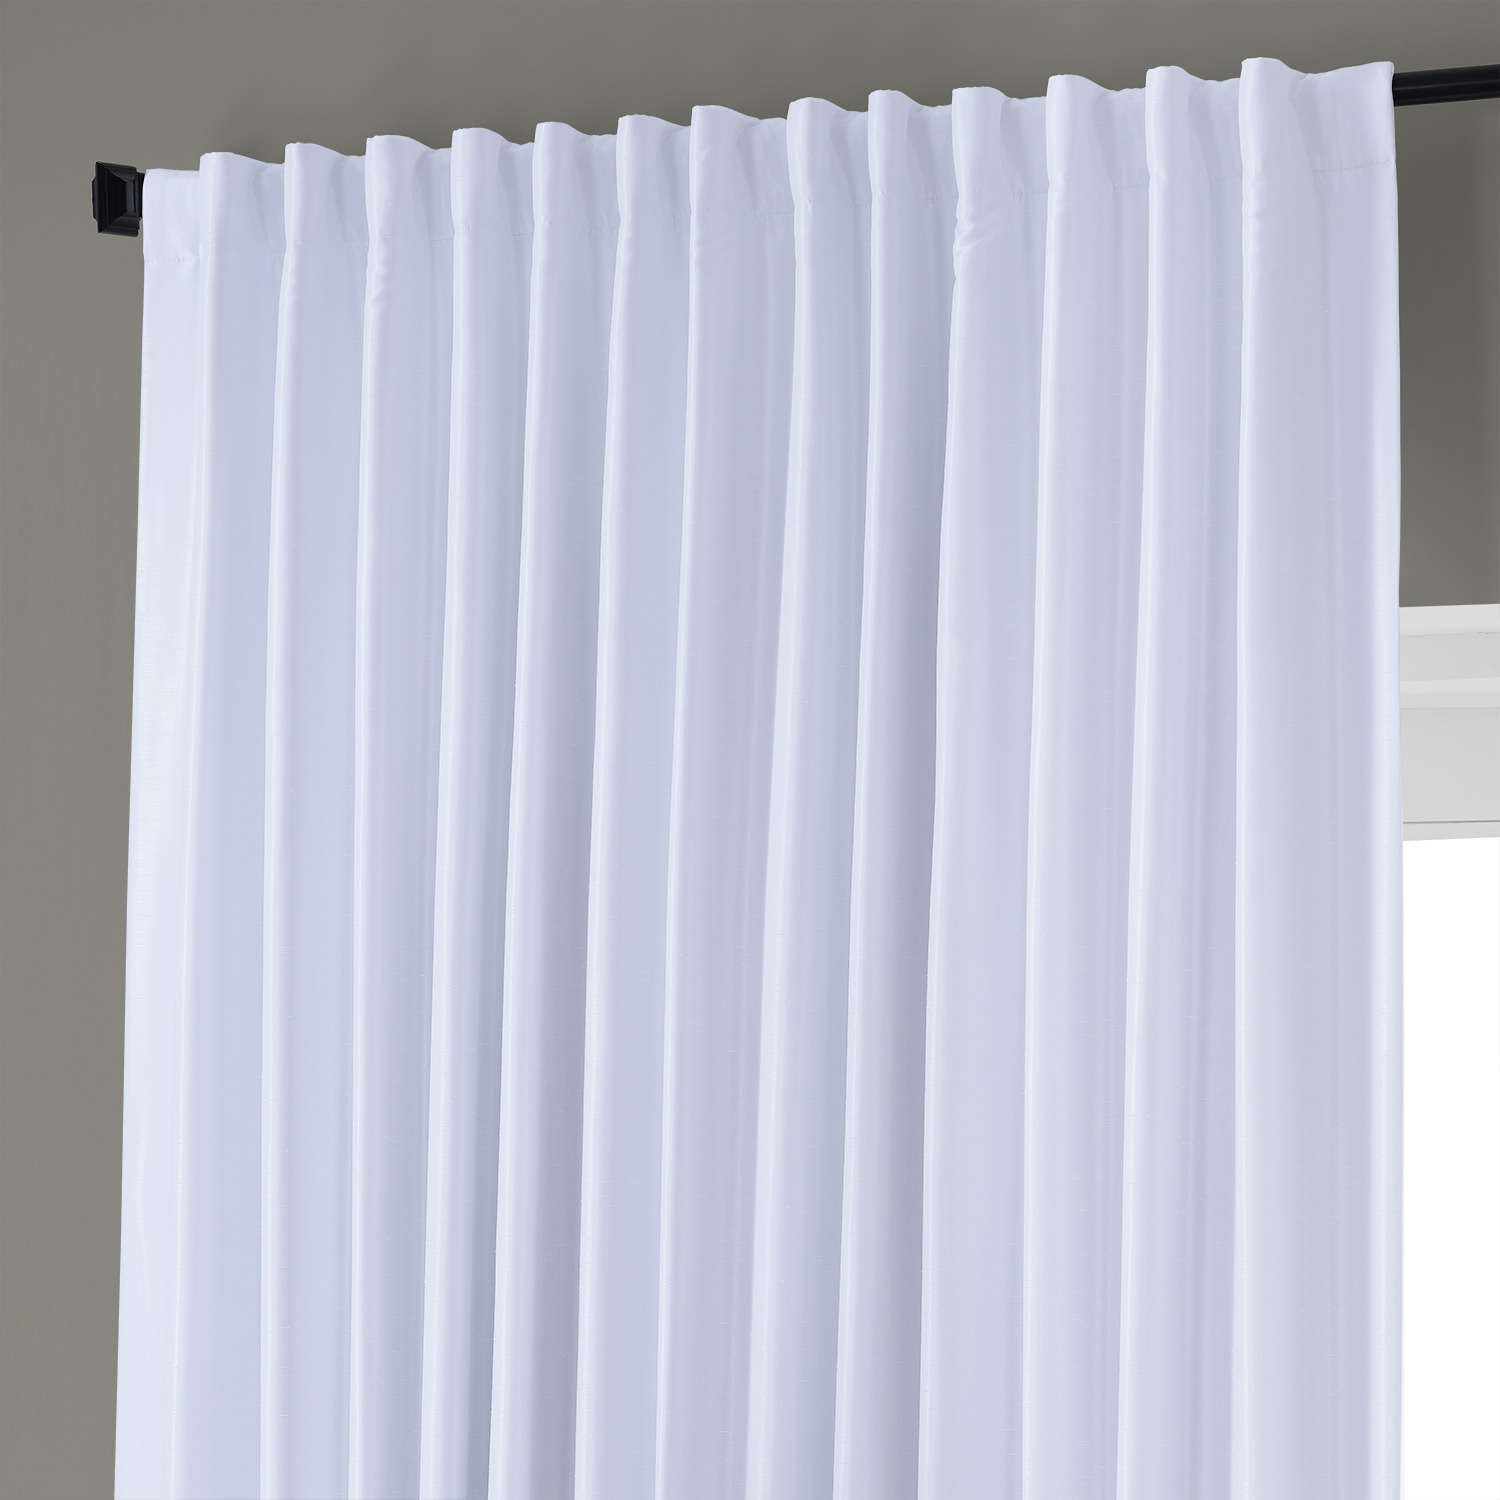 Ice Blackout Extra Wide Vintage Textured Faux Dupioni Curtain